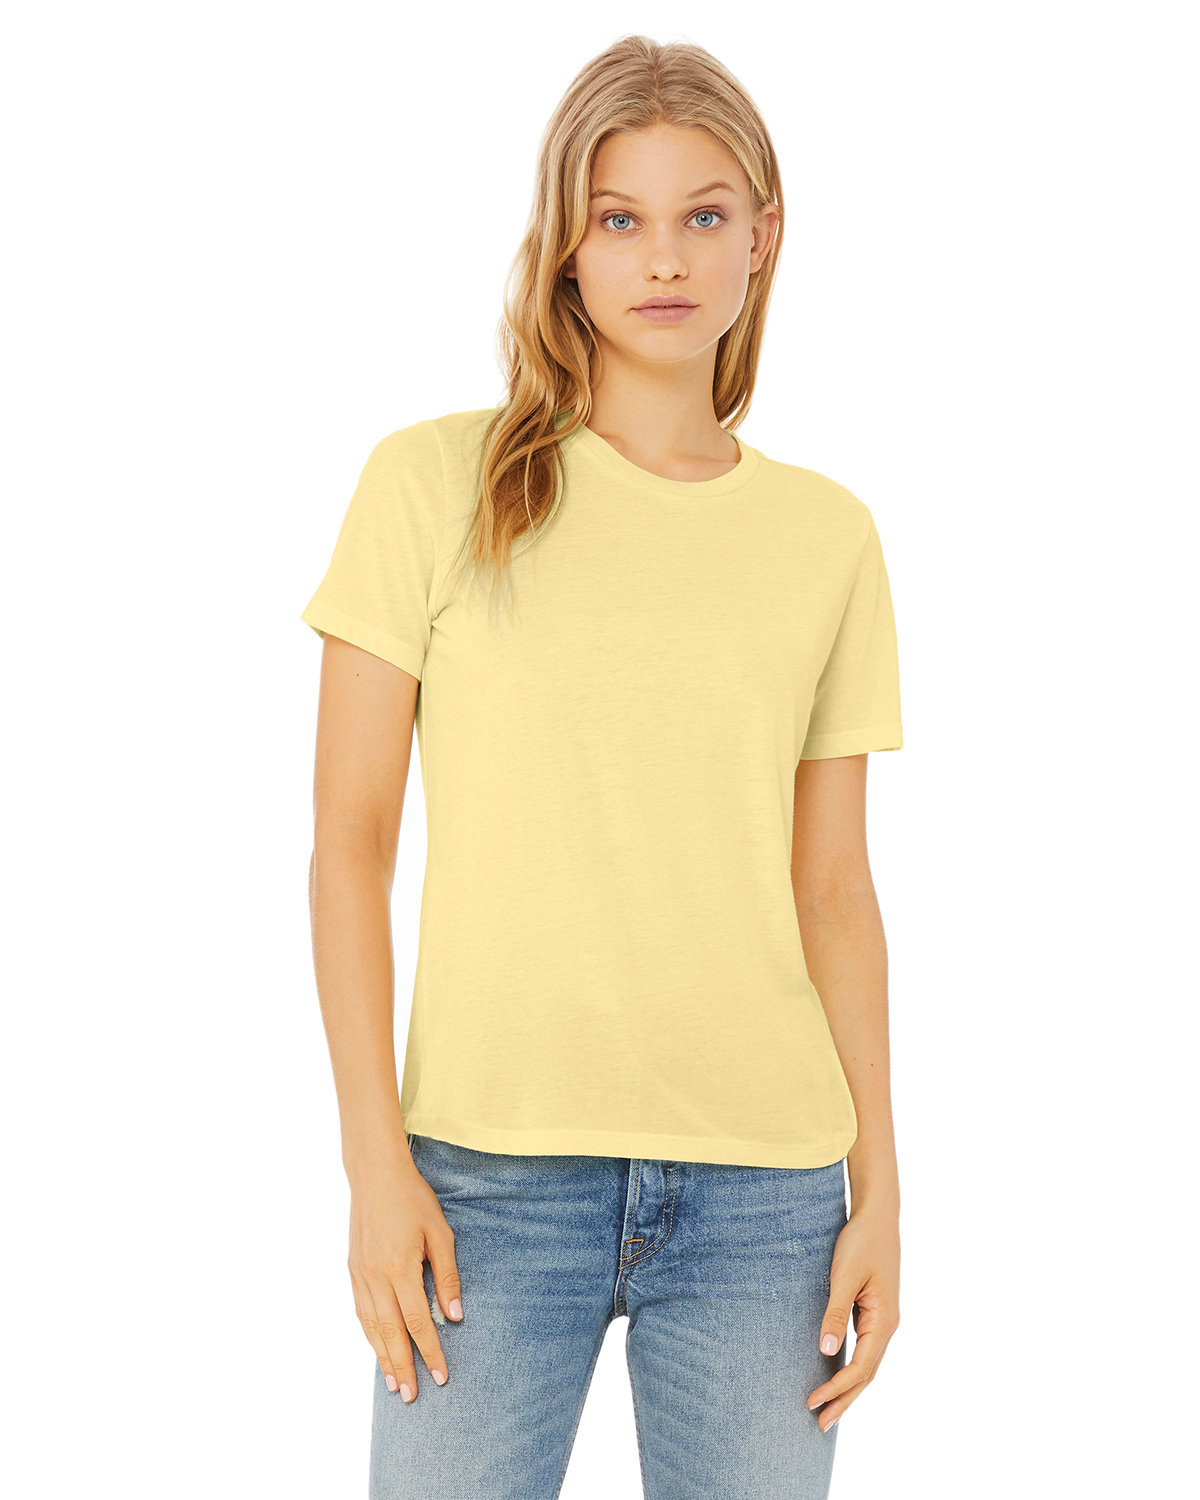 Bella + Canvas Ladies' Relaxed Triblend T-Shirt PALE YLW TRBLND